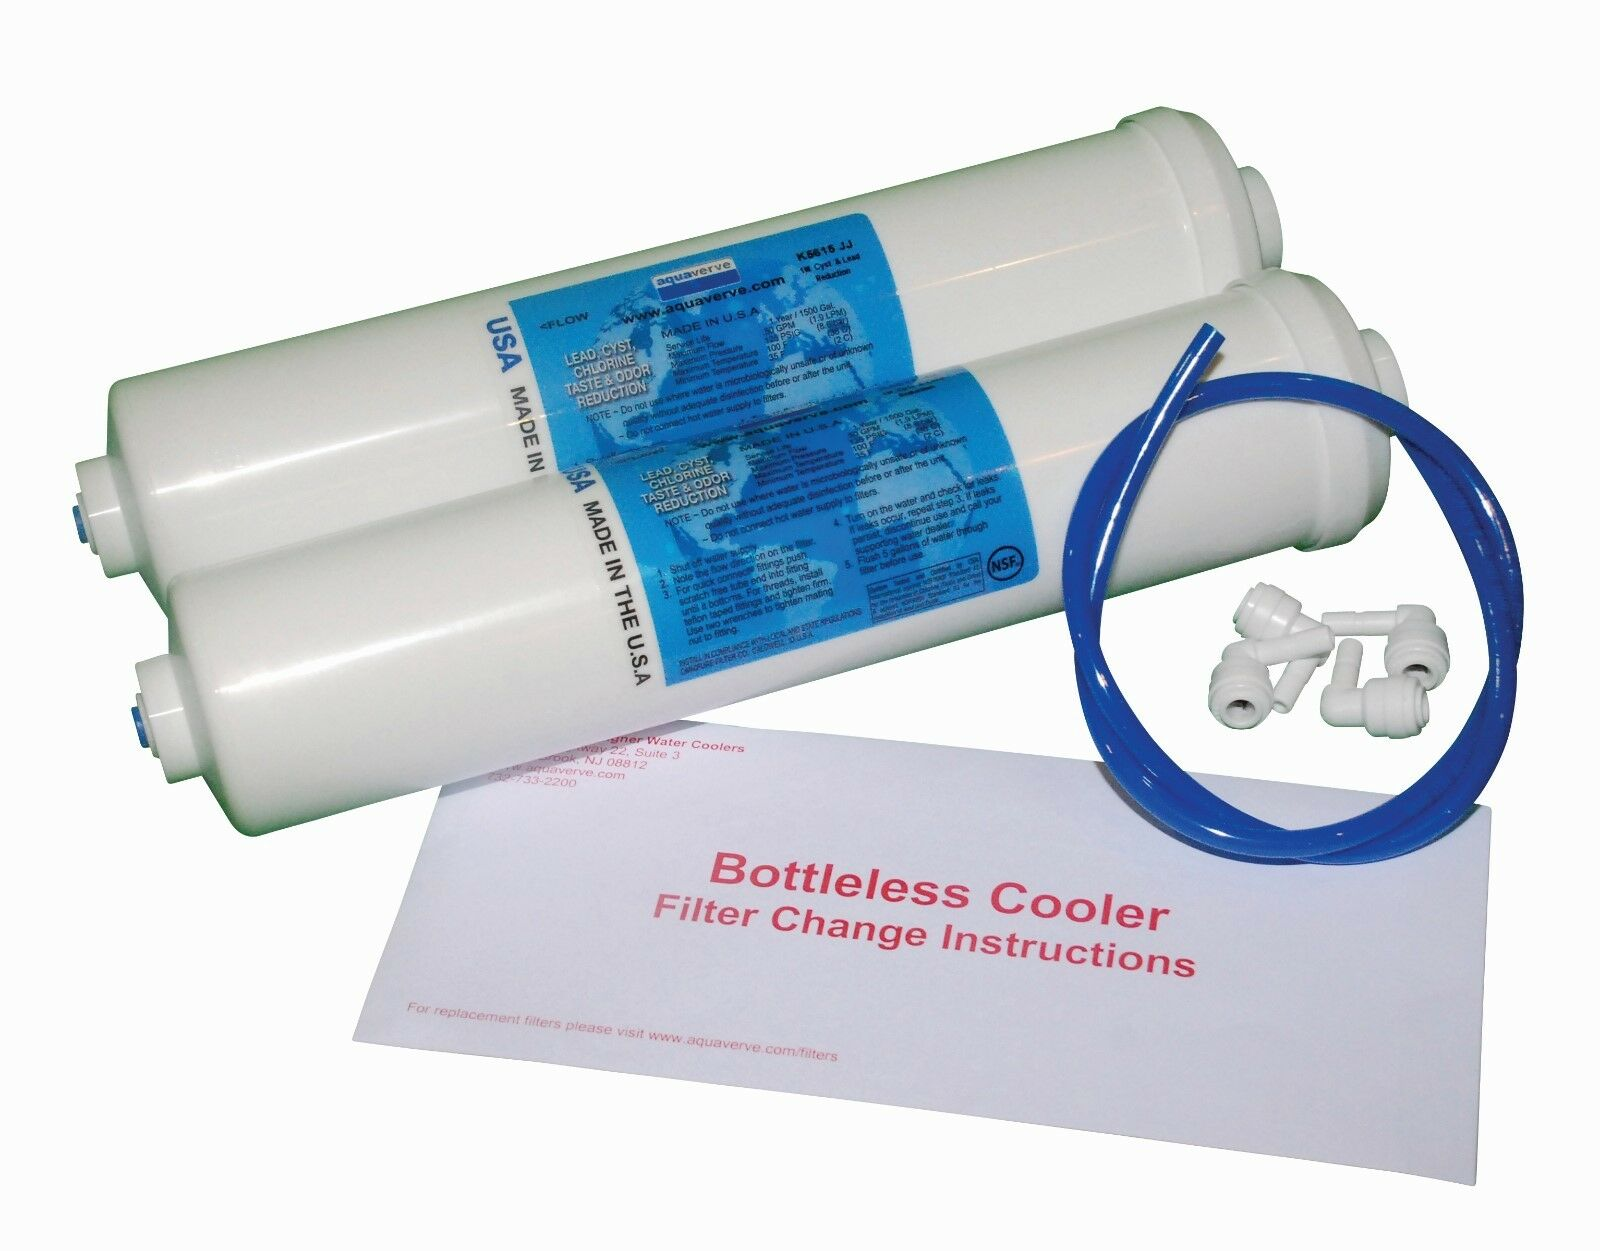 Replacement Filter Kit for Pacifik Bottleless Coolers